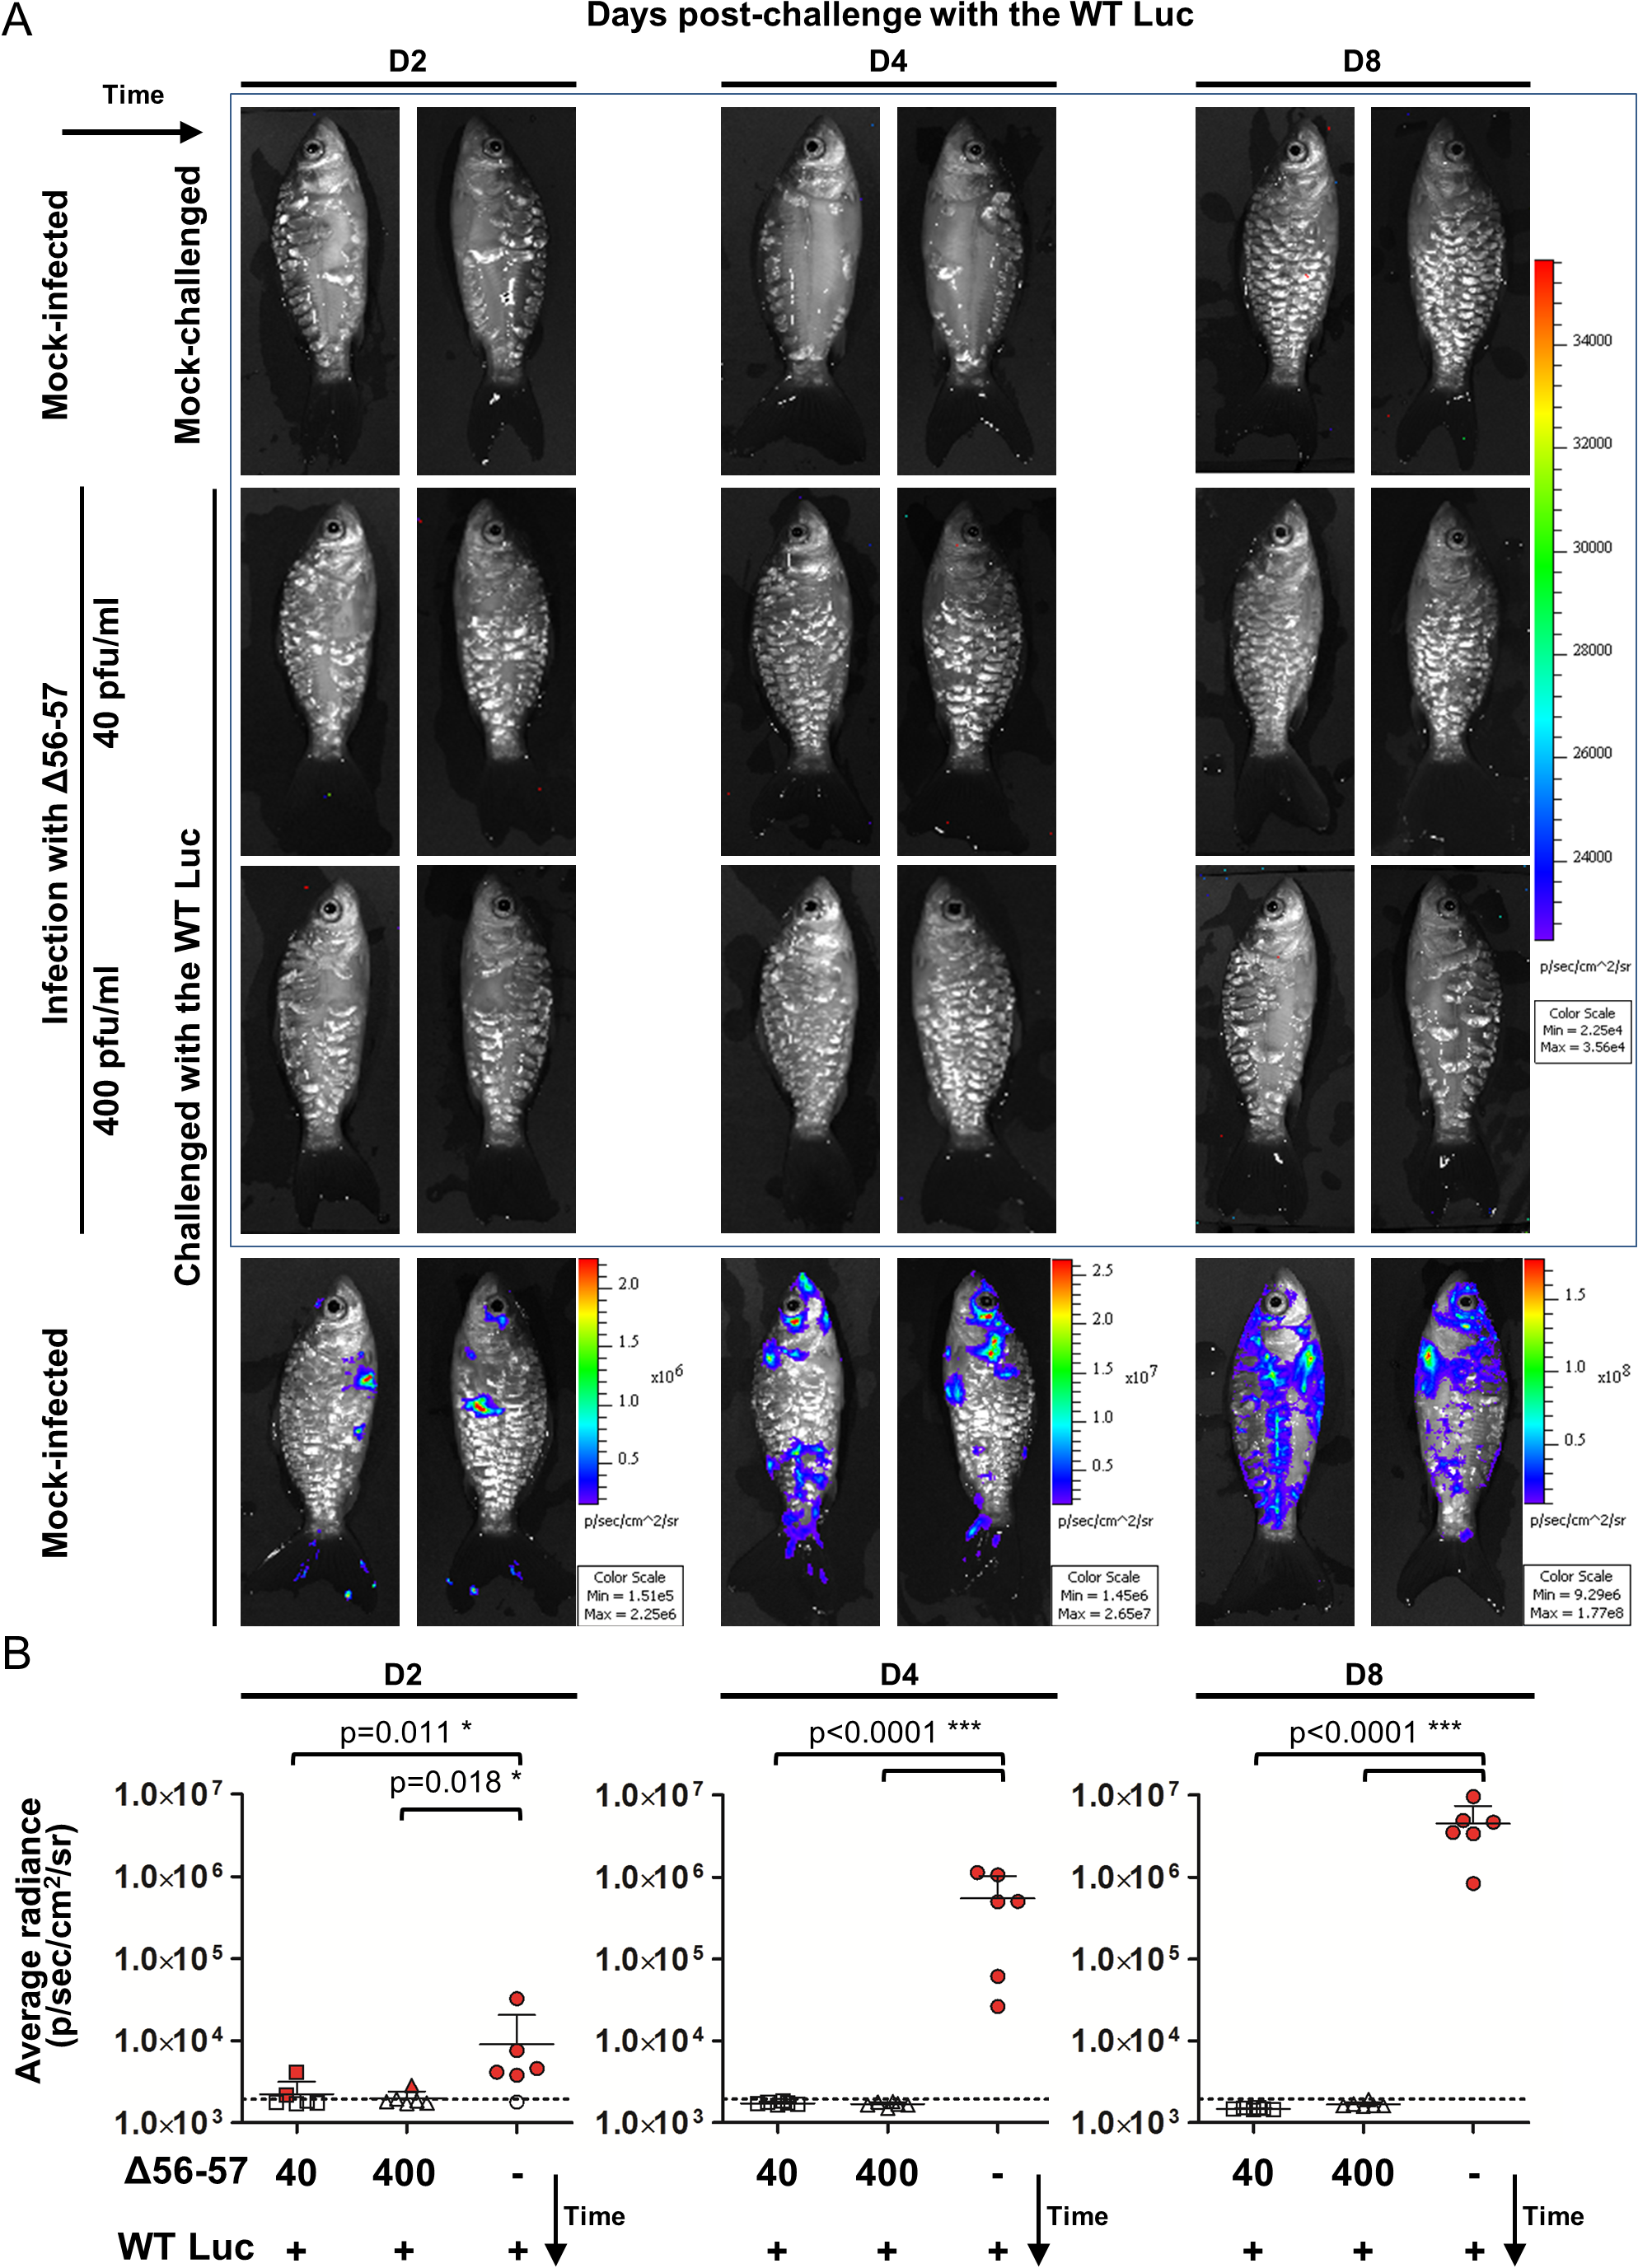 Immune protection conferred by the Δ56-57 strain revealed by the IVIS.